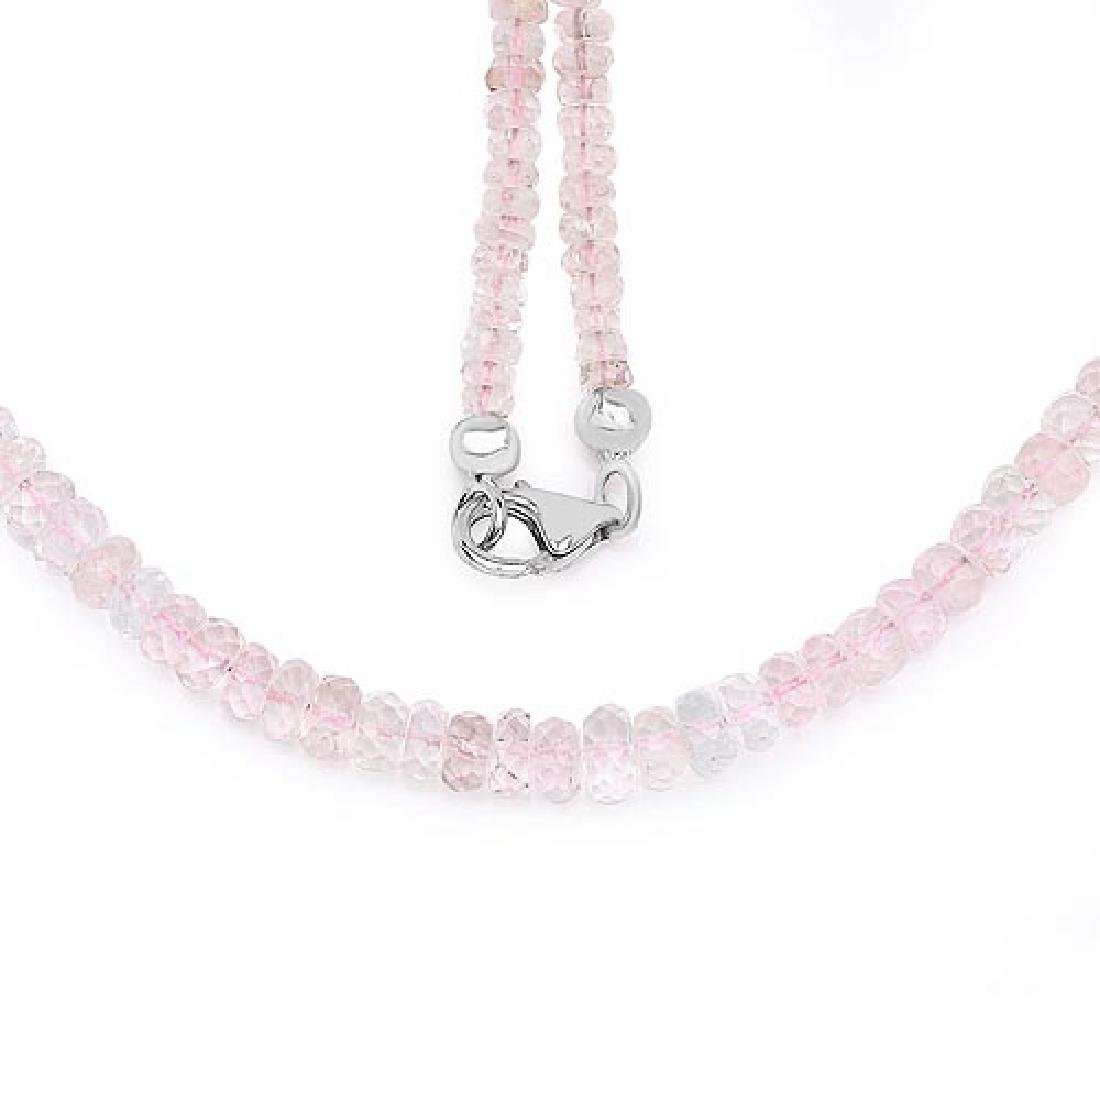 60.00 Carat Genuine Morganite .925 Sterling Silver Neck